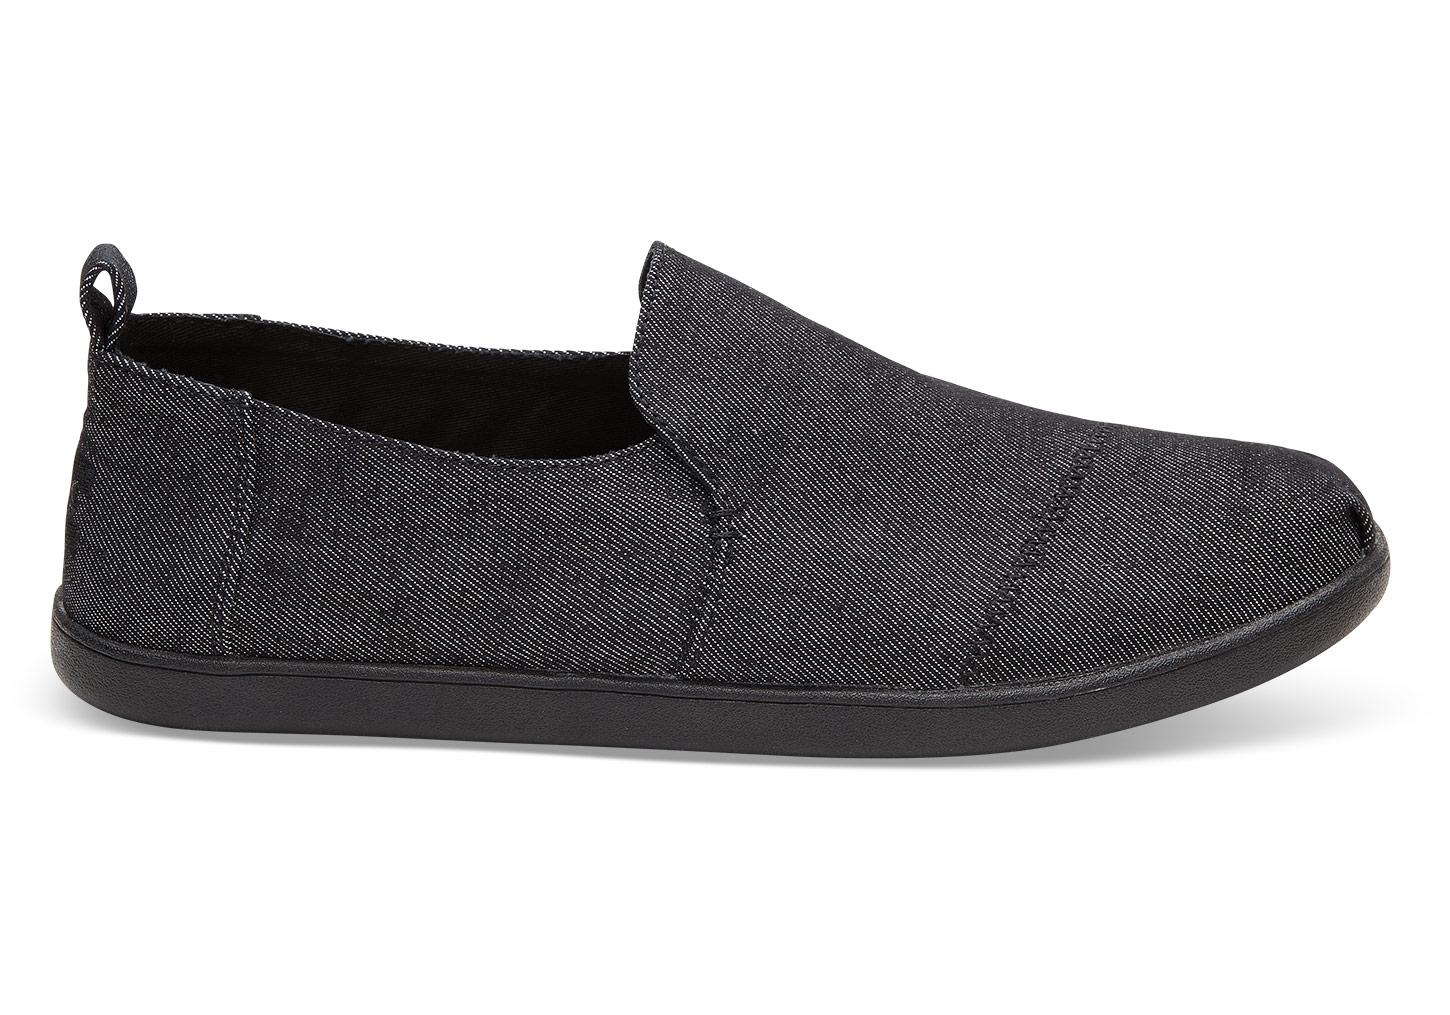 Toms Shoes New York Price